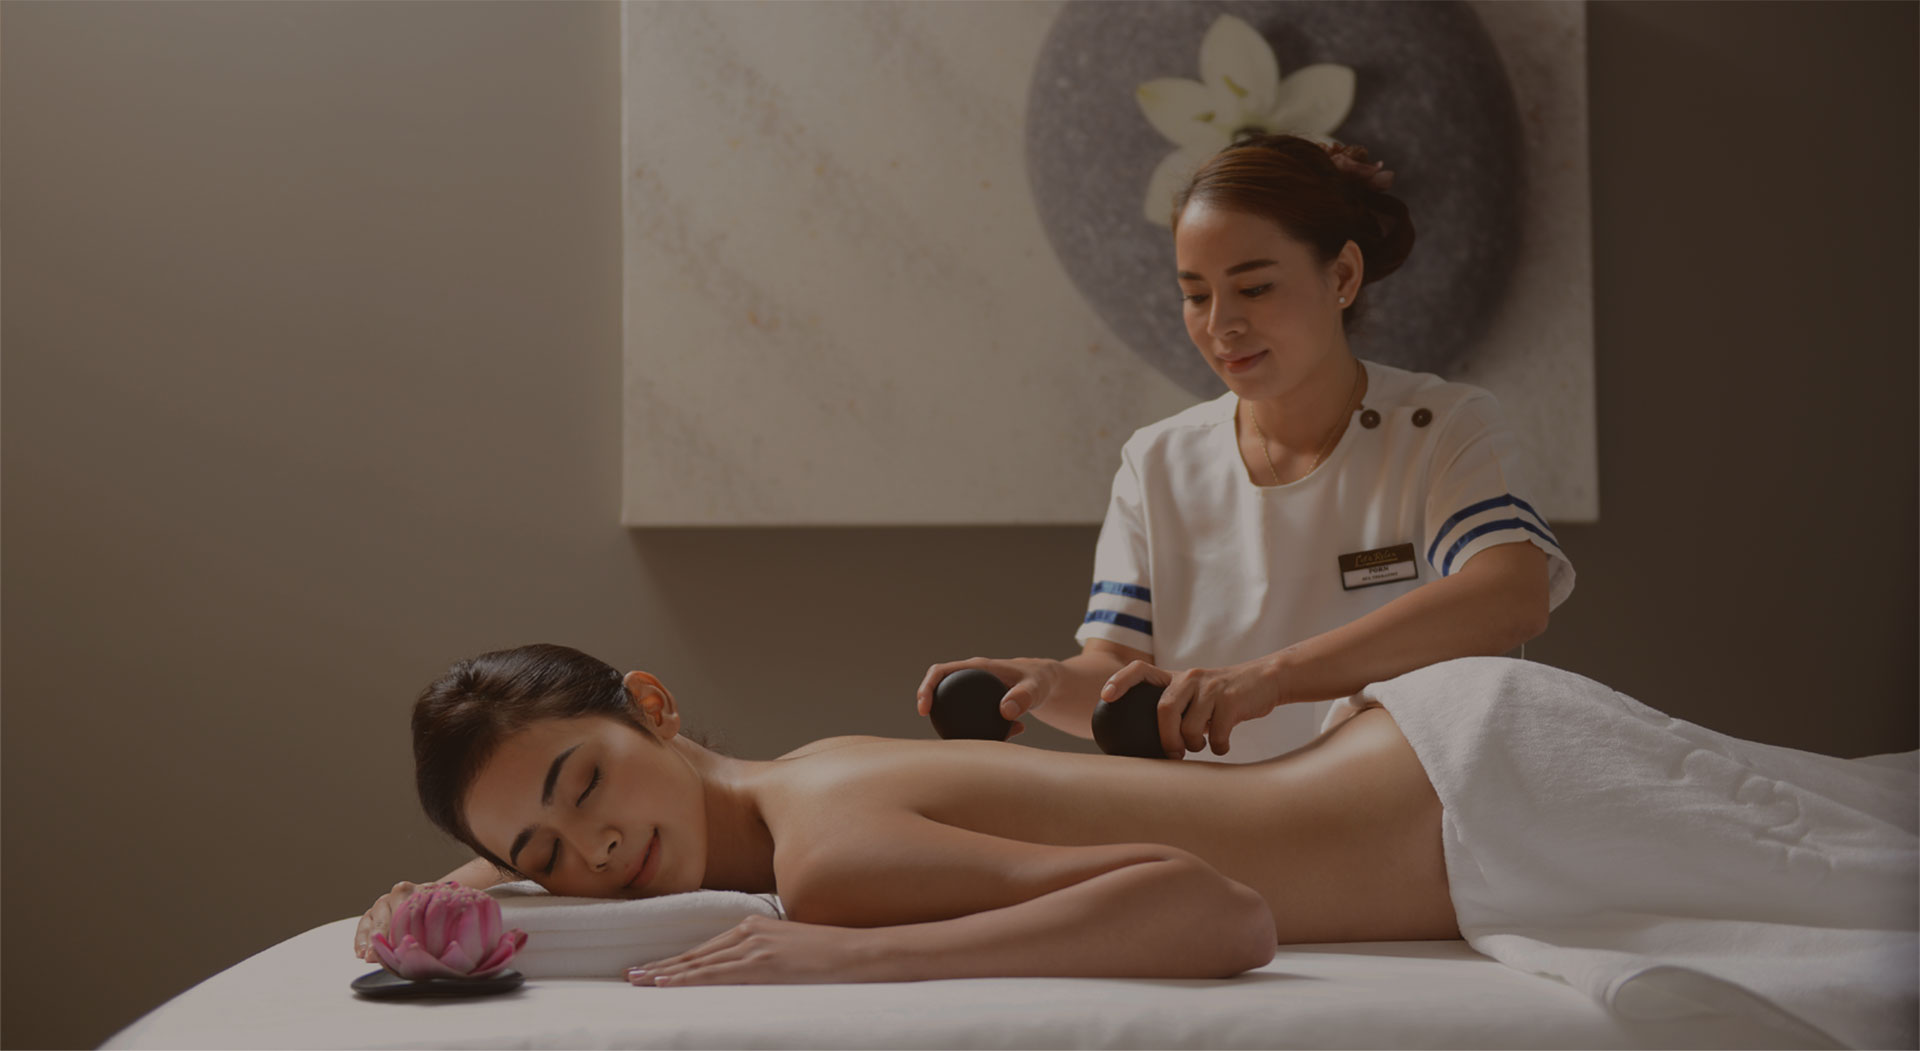 The Let's Relax Spa Experience